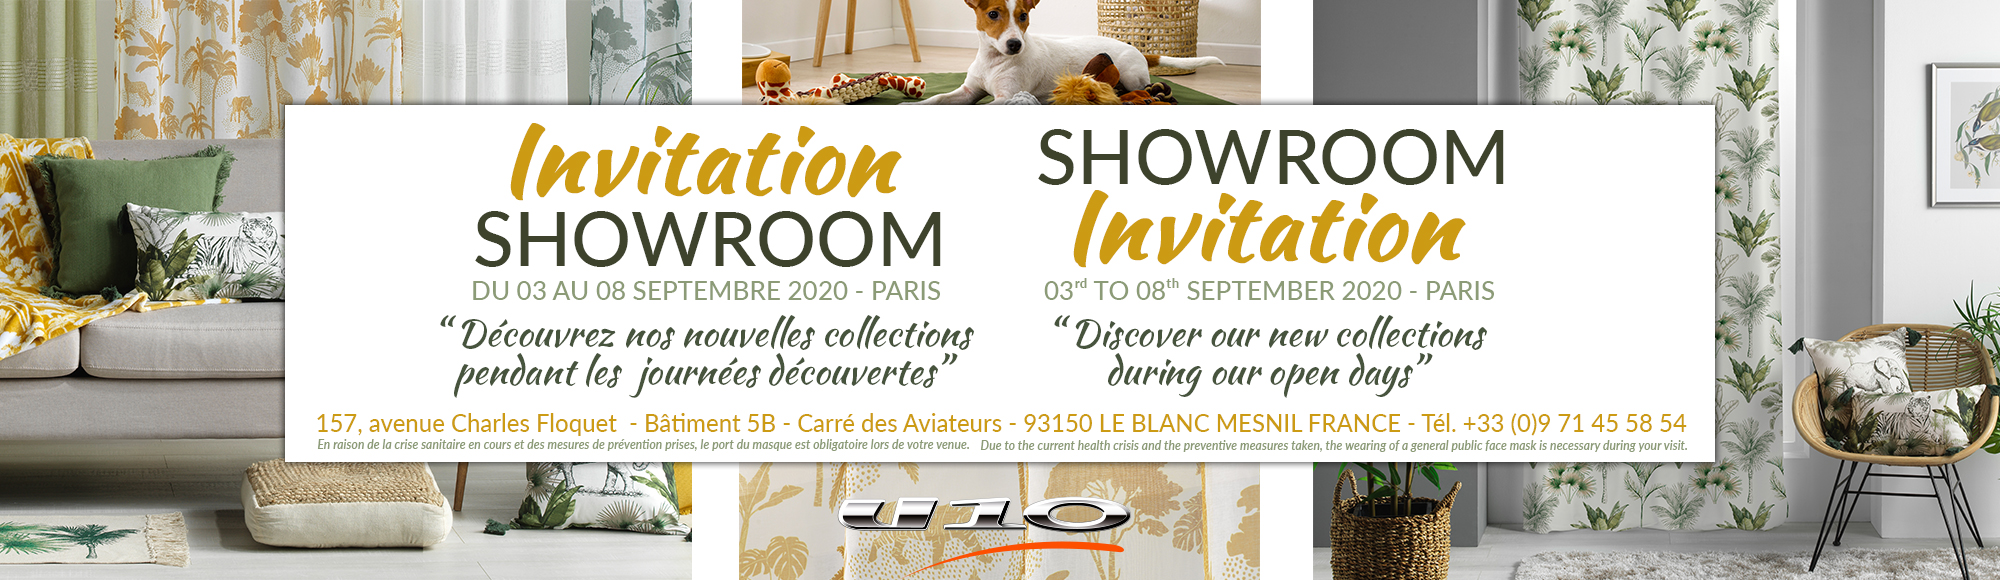 U10 - Fournisseur en decoration d'interieur - invitation showroom paris sept 2020